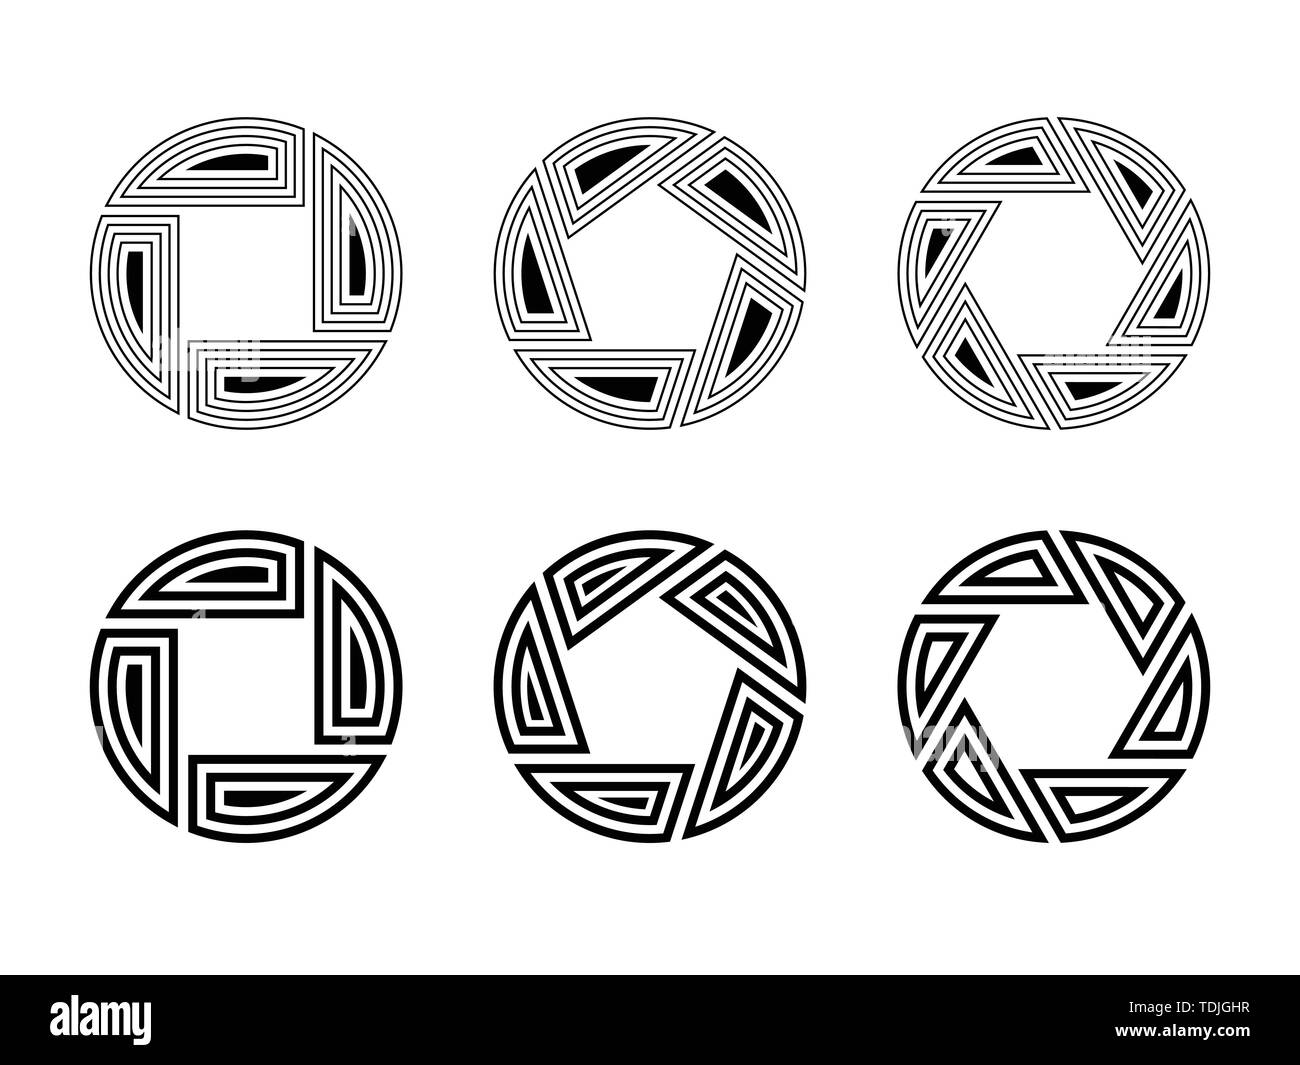 Set of six abstract circular ornaments isolated on white